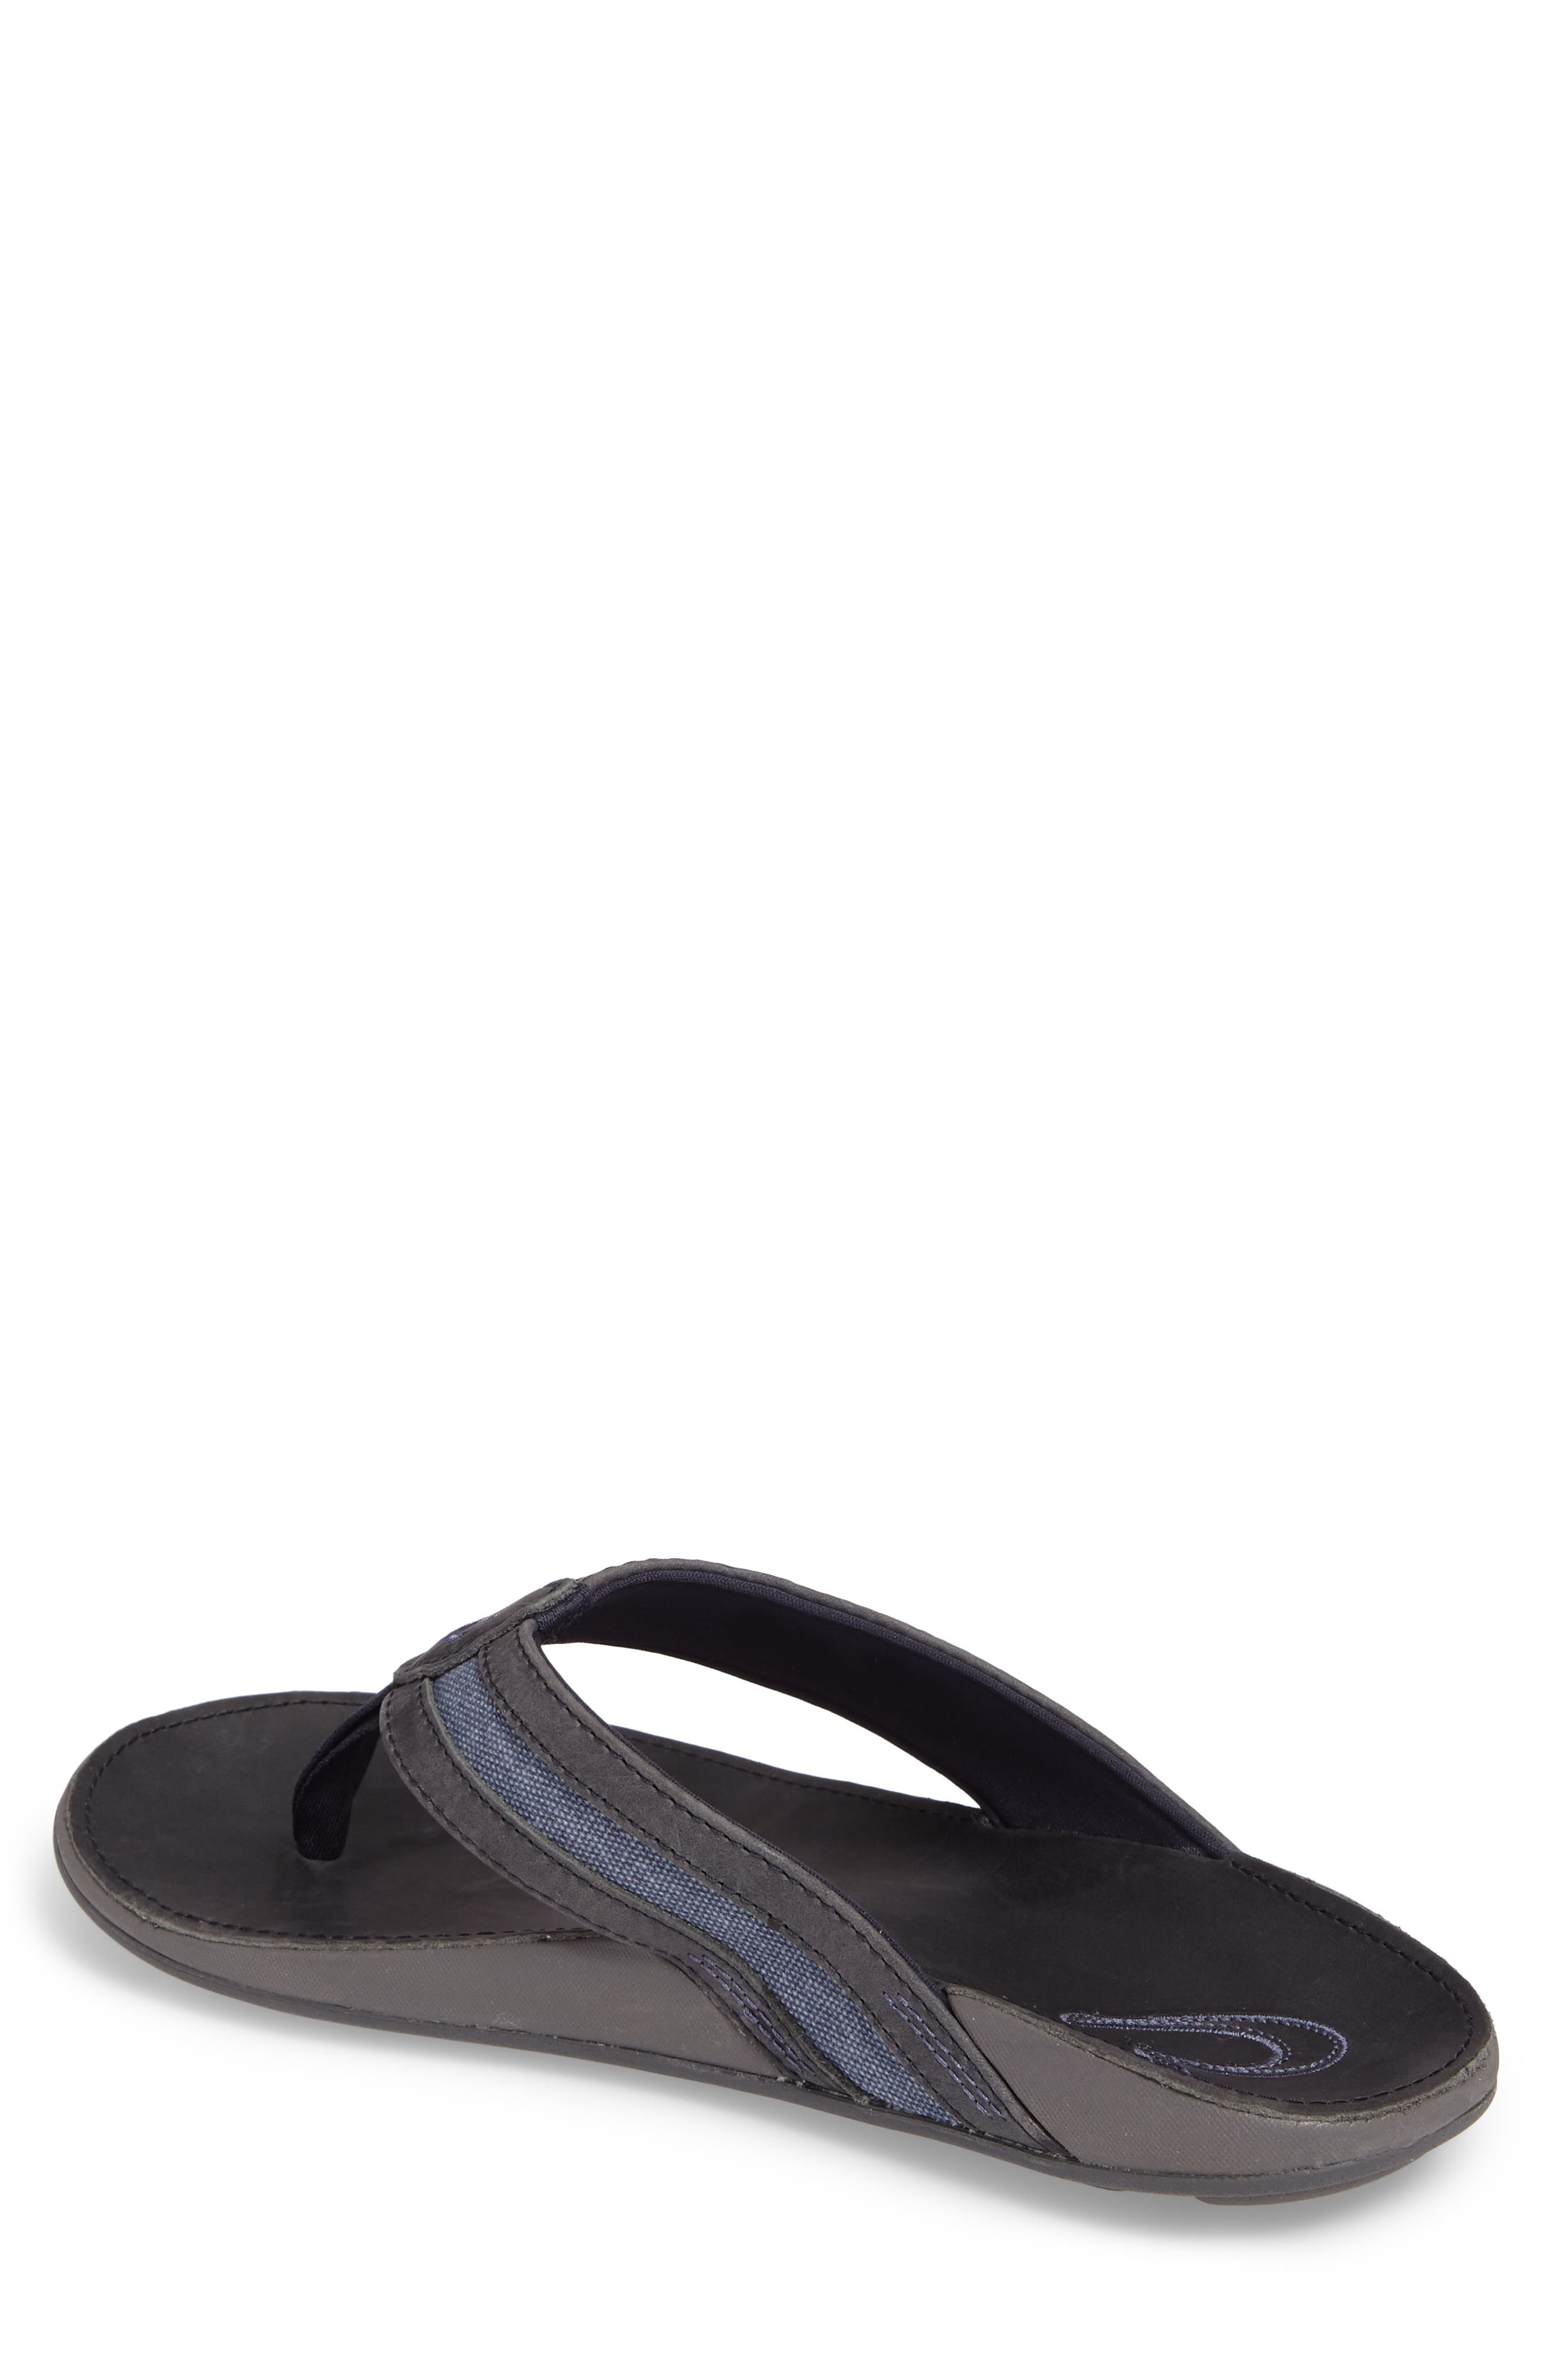 Ikoi Flip Flop,                             Alternate thumbnail 2, color,                             Trench Blue Leather